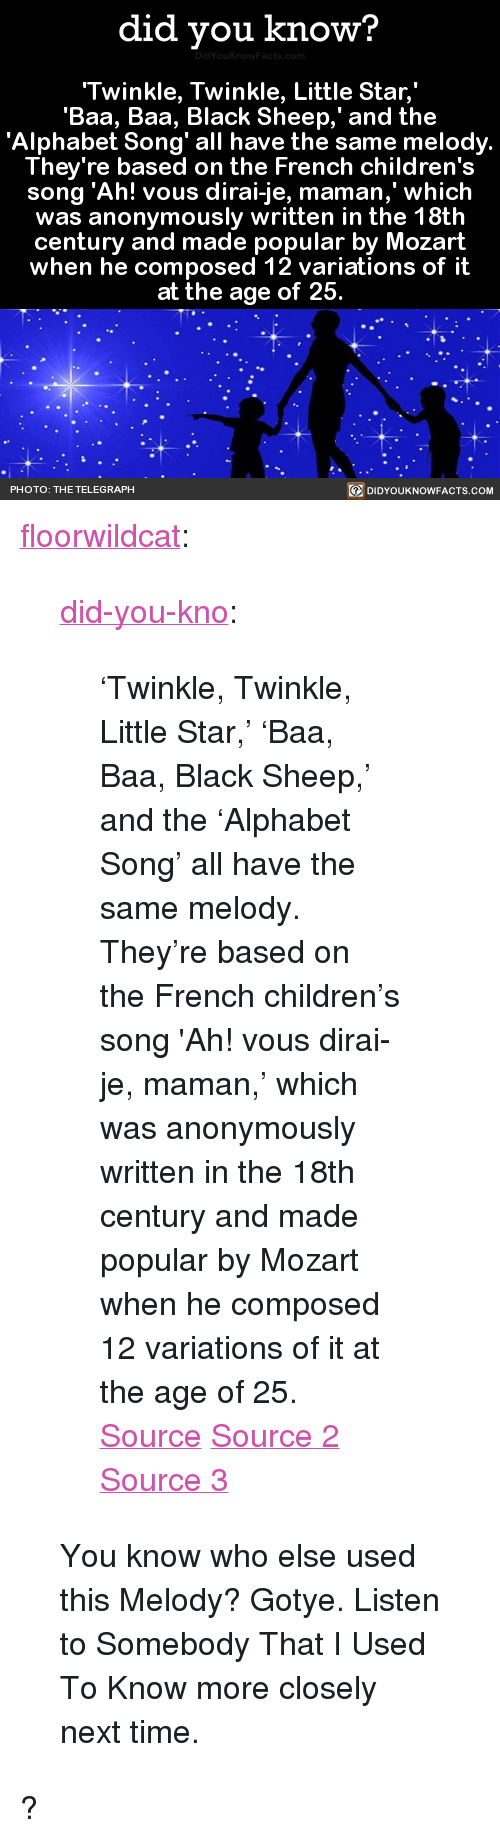 """black sheep: did you know?  Twinkle, Twinkle, Little Star,  'Baa, Baa, Black Sheep,' and the  'Alphabet Song' all have the same melody.  They're based on the French children's  song 'Ah! vous dirai-je, maman,' which  was anonymously written in the 18th  century and made popular by Mozart  when he composed 12 variations of it  at the age of 25  BE DIDYOUKNOWFACTS COM  PHOTO: THE TELEGRAPH <p><a href=""""http://floorwildcat.tumblr.com/post/158455959893/twinkle-twinkle-little-star-baa-baa-black"""" class=""""tumblr_blog"""">floorwildcat</a>:</p>  <blockquote><p><a href=""""http://didyouknowblog.com/post/158452262084/twinkle-twinkle-little-star-baa-baa-black"""" class=""""tumblr_blog"""">did-you-kno</a>:</p>  <blockquote><p>'Twinkle, Twinkle, Little Star,' 'Baa, Baa, Black Sheep,' and the &lsquo;Alphabet Song' all have the same melody. They're based on the French children's song 'Ah! vous dirai-je, maman,' which was anonymously written in the 18th century and made popular by Mozart when he composed 12 variations of it at the age of 25.  <a href=""""https://en.wikipedia.org/wiki/Twelve_Variations_on_%22Ah_vous_dirai-je,_Maman%22"""">Source</a> <a href=""""https://en.wikipedia.org/wiki/Twinkle,_Twinkle,_Little_Star"""">Source 2</a> <a href=""""https://en.wikipedia.org/wiki/Baa,_Baa,_Black_Sheep#Melody"""">Source 3</a></p></blockquote>  <p>You know who else used this Melody? Gotye. Listen to Somebody That I Used To Know more closely next time.</p></blockquote>  <p>?</p>"""